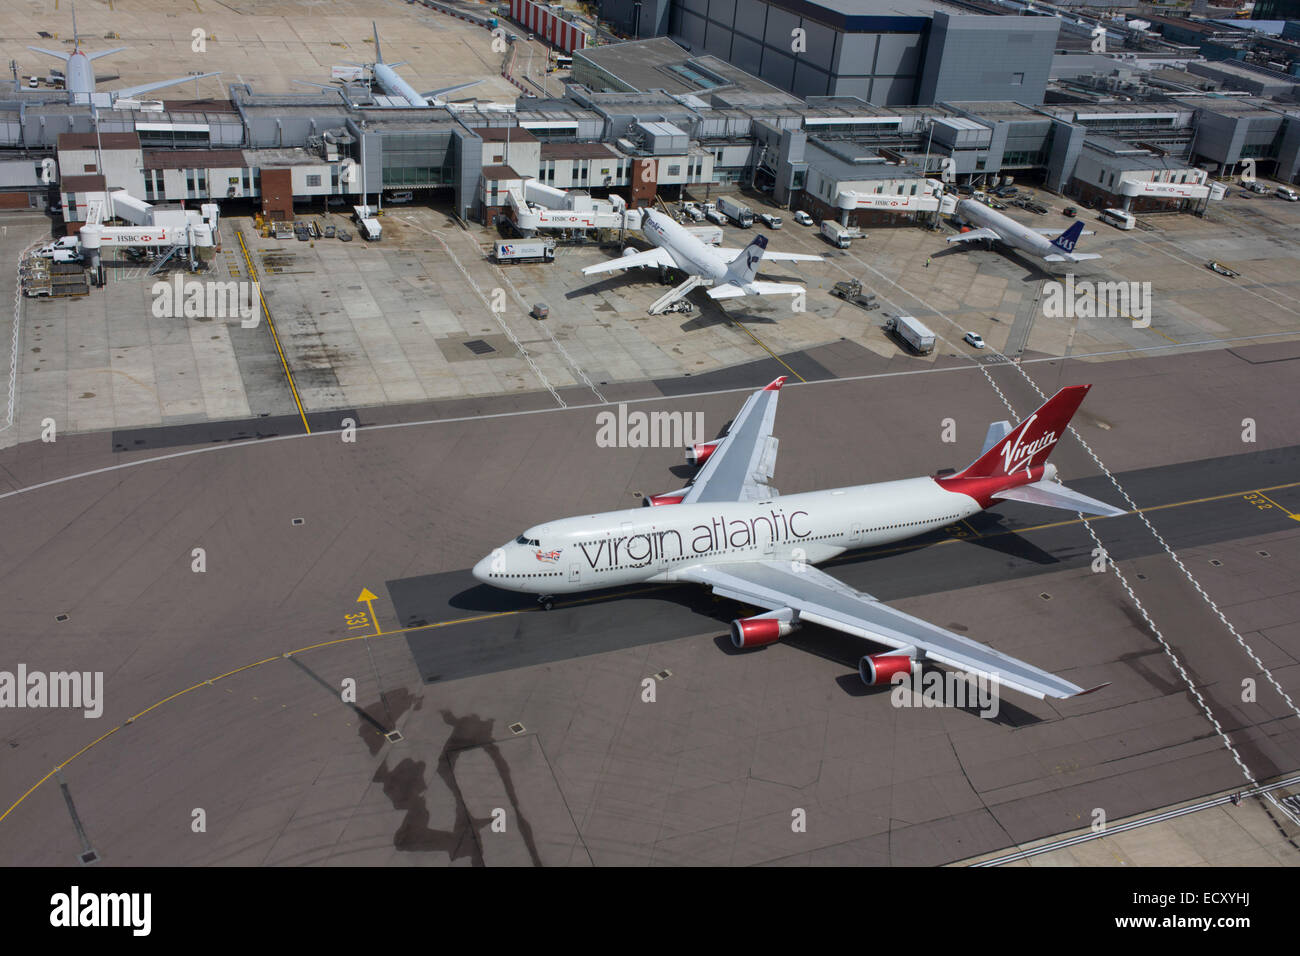 Aerial view (from control tower) of taxiing Virgin Atlantic 747 airliner at London Heathrow airport. - Stock Image